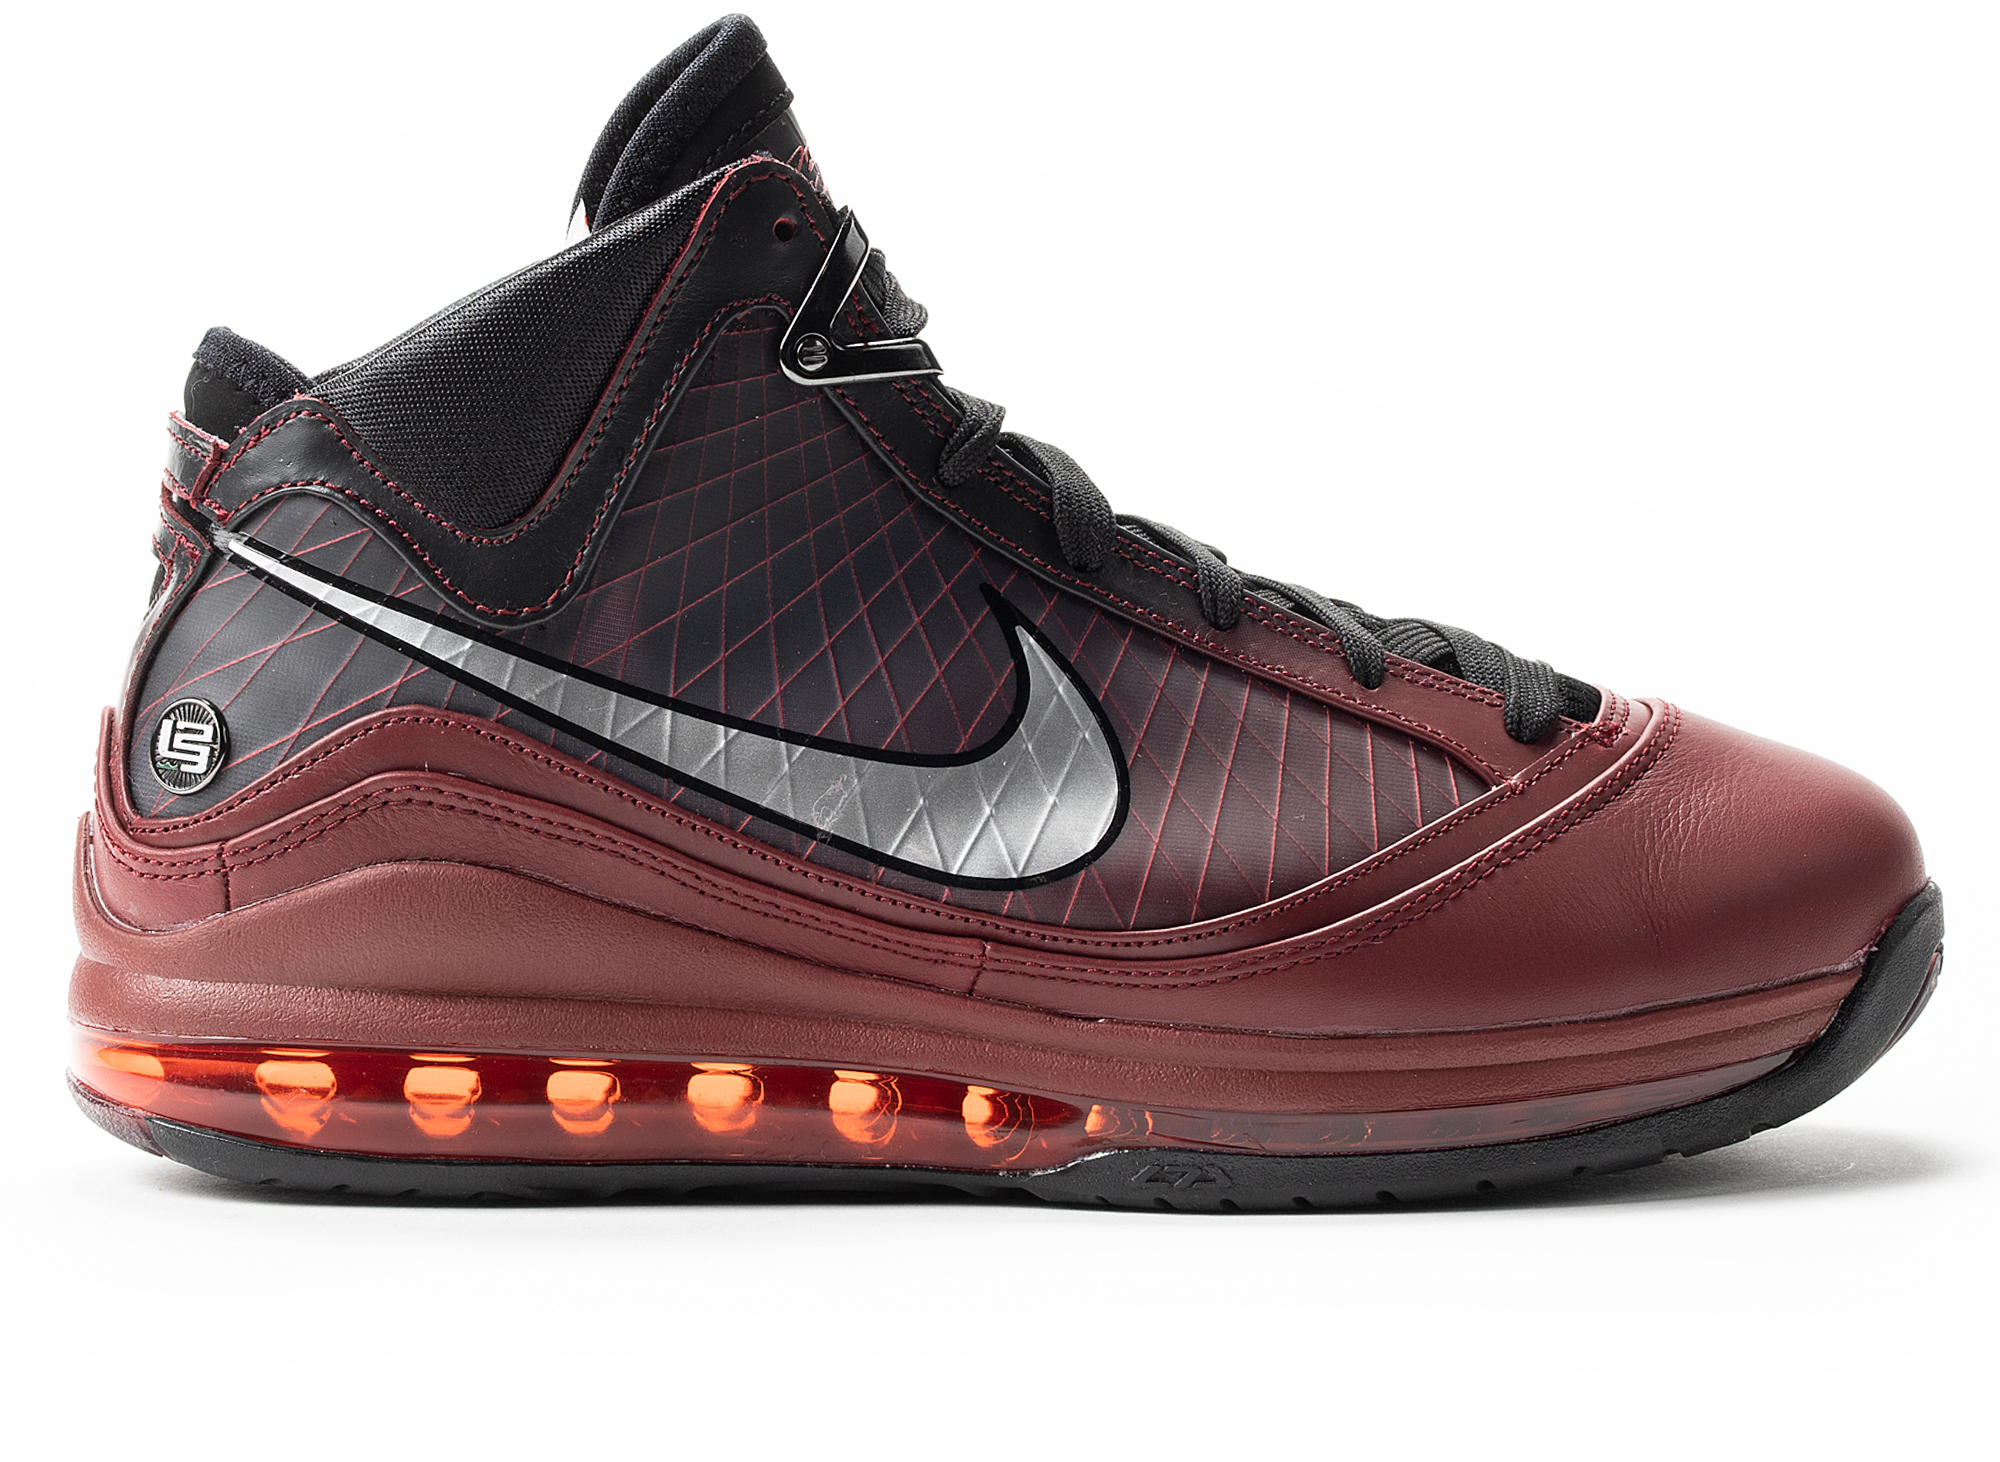 Nike Air Max LeBron 7 Retro QS 'Christmas'